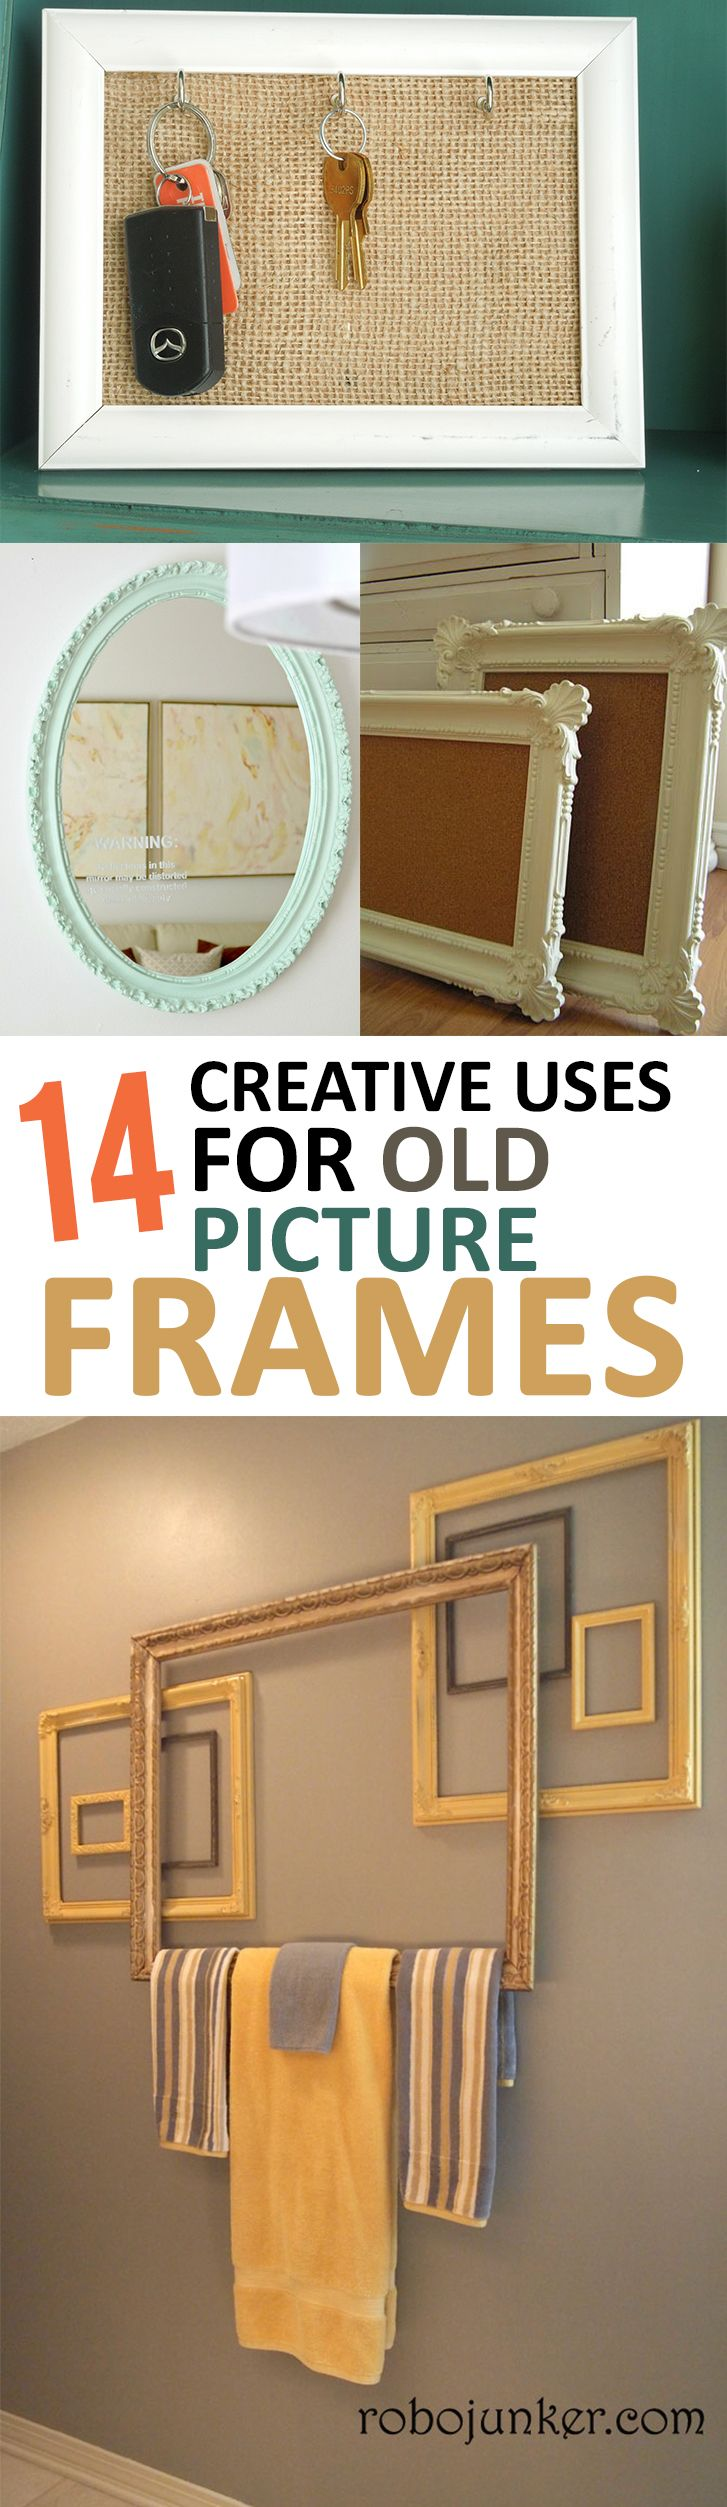 395 best unique framing ideas images on pinterest home ideas 14 creative uses for old picture frames jeuxipadfo Choice Image